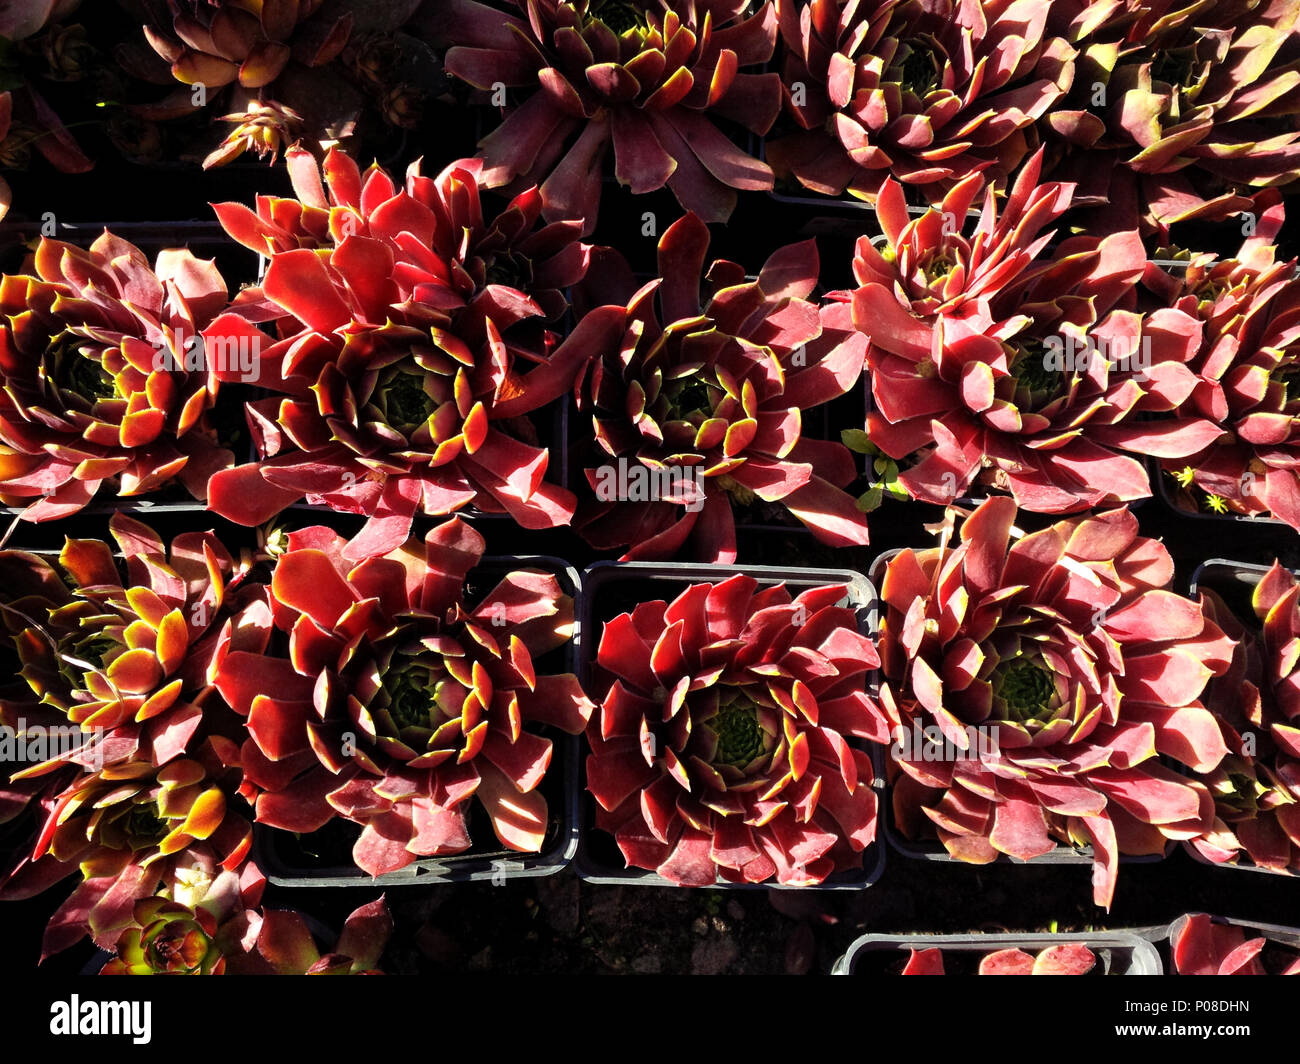 Red potted sempervivum succulents rosettes under summer sunlight from a high angle view Stock Photo